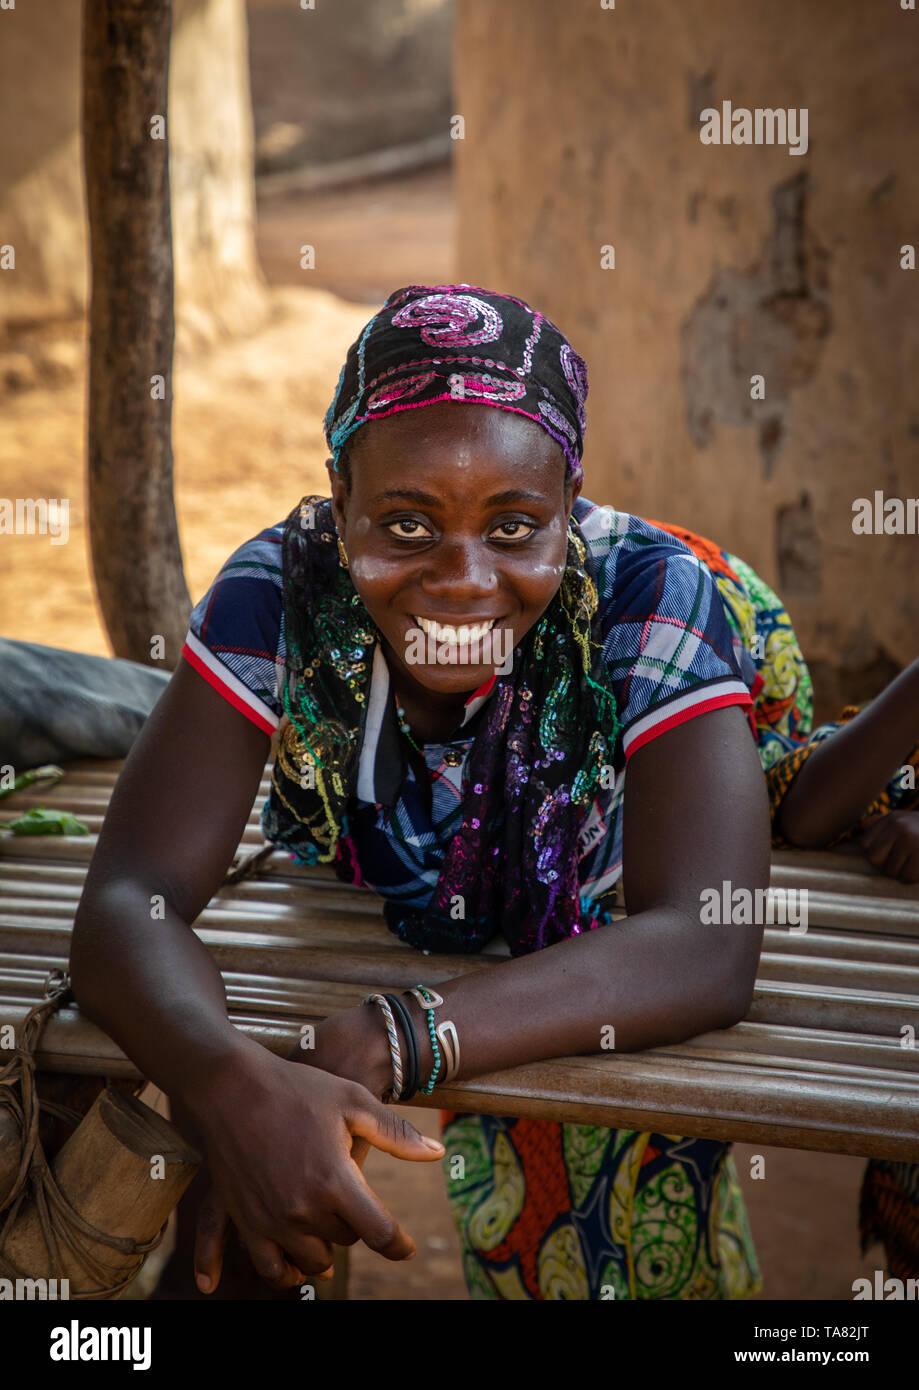 Portrait of a Dan tribe smiling woman resting on a wood bed, Bafing, Gboni, Ivory Coast Stock Photo